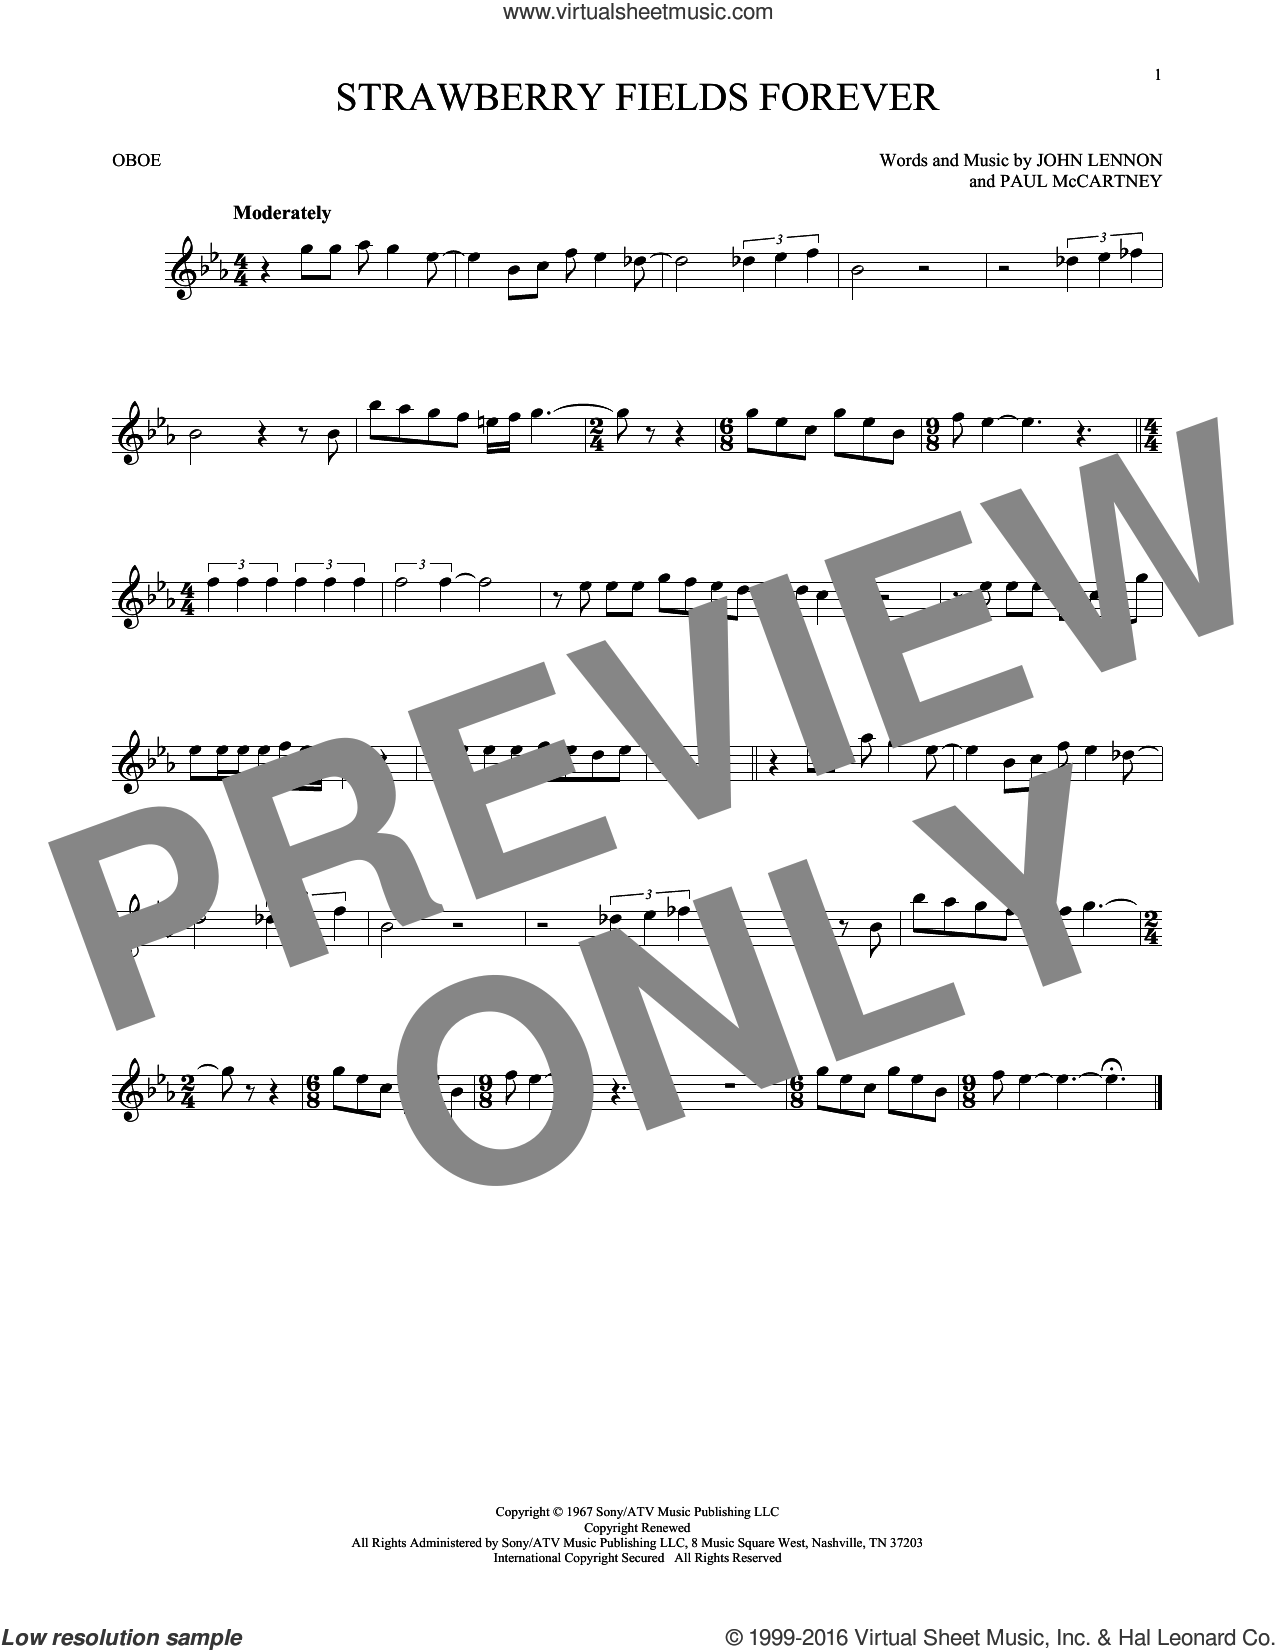 Strawberry Fields Forever sheet music for oboe solo by Paul McCartney